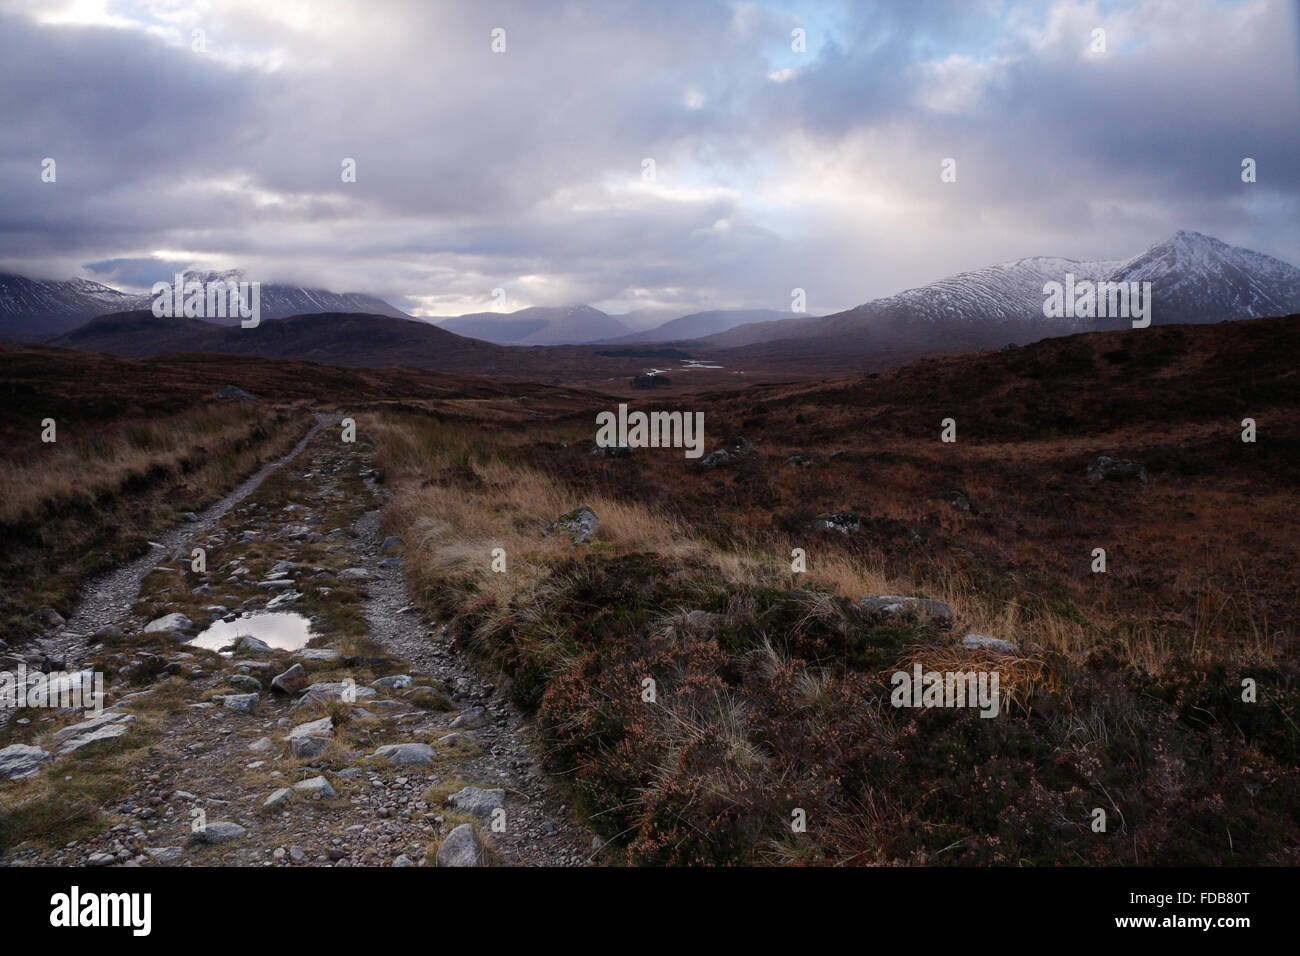 Remote, rugged path across Rannoch Moor, near Glencoe, Scottish Highlands - Stock Image